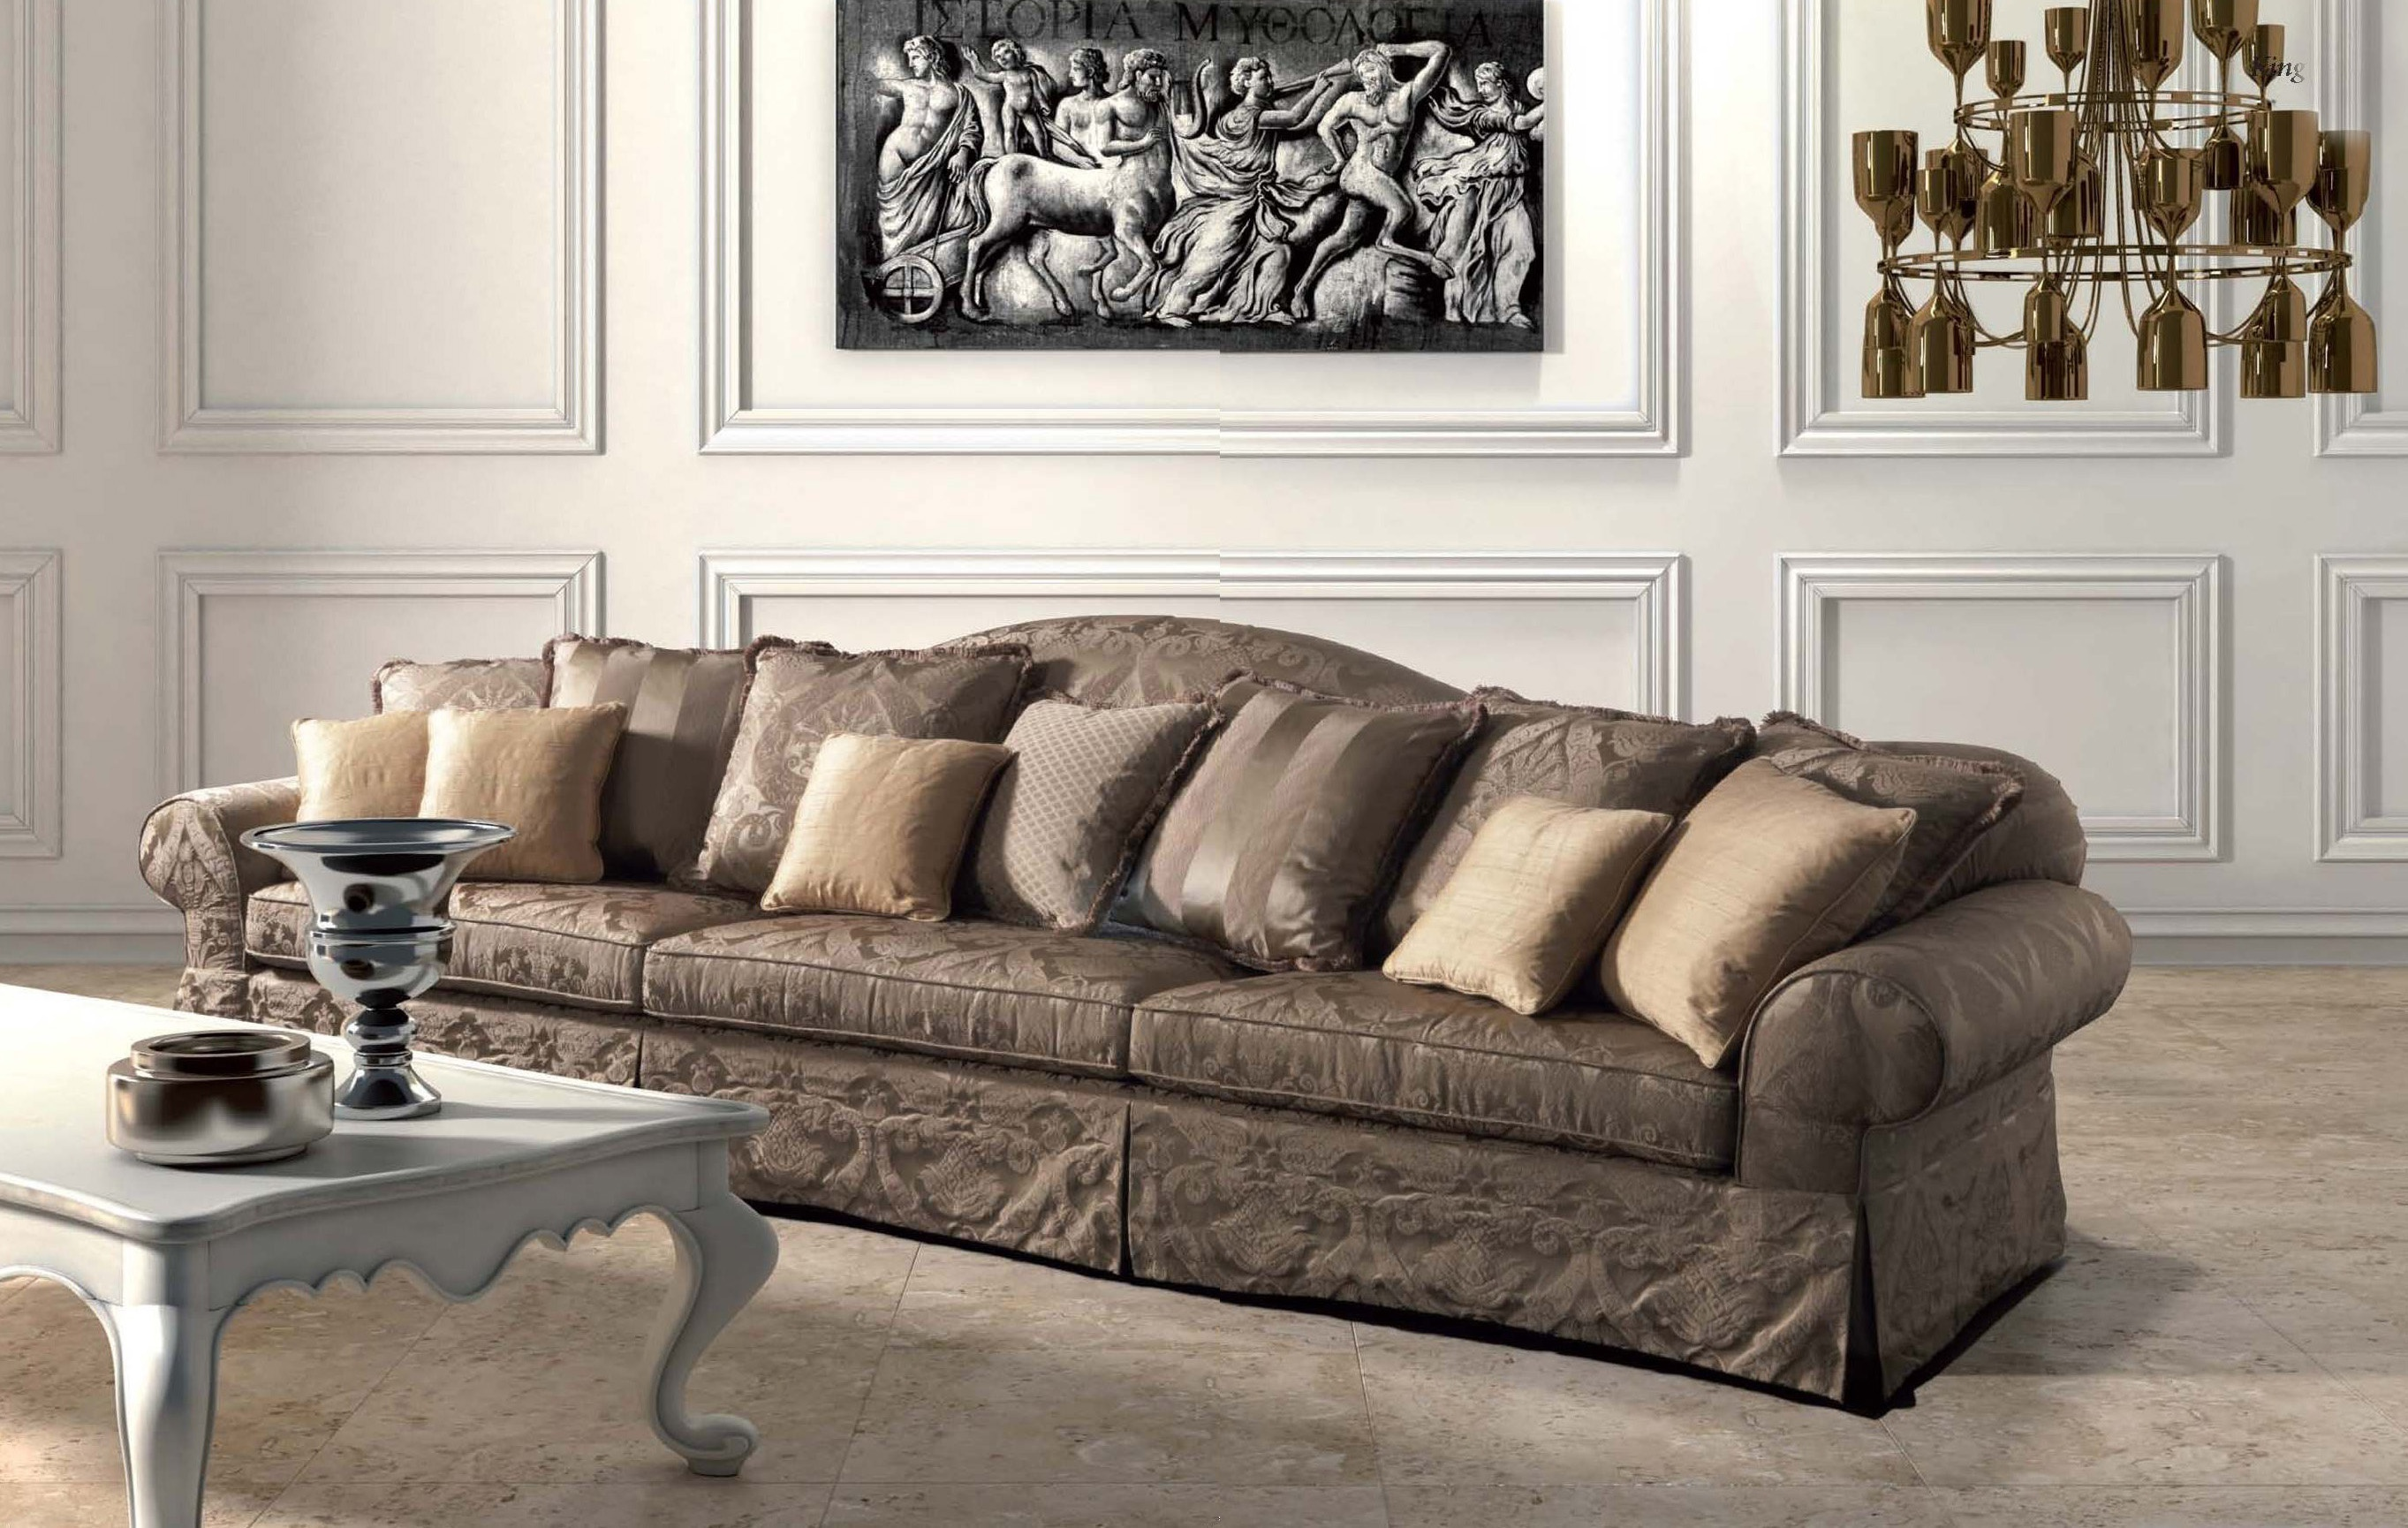 Three Seater Sofa King Asnaghi Made In Italy Luxury